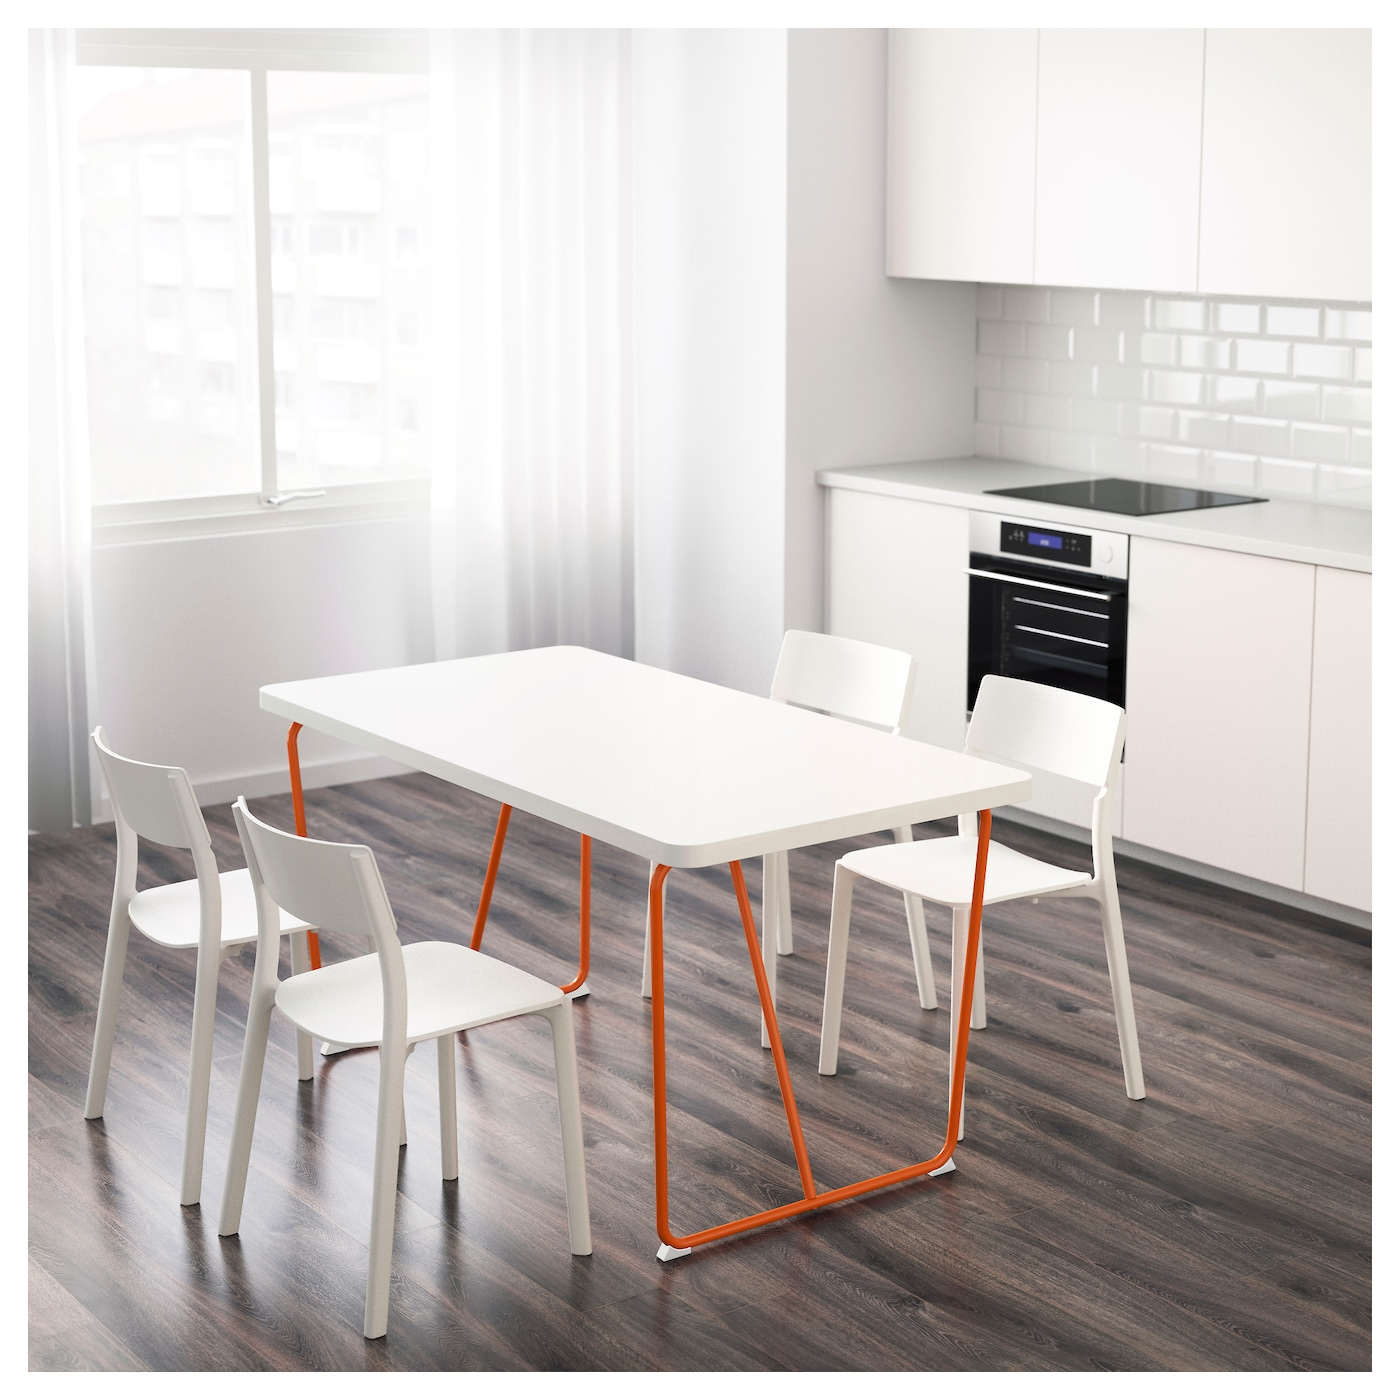 IKEA RYDEBÄCK table La surface vernie est facile à nettoyer.